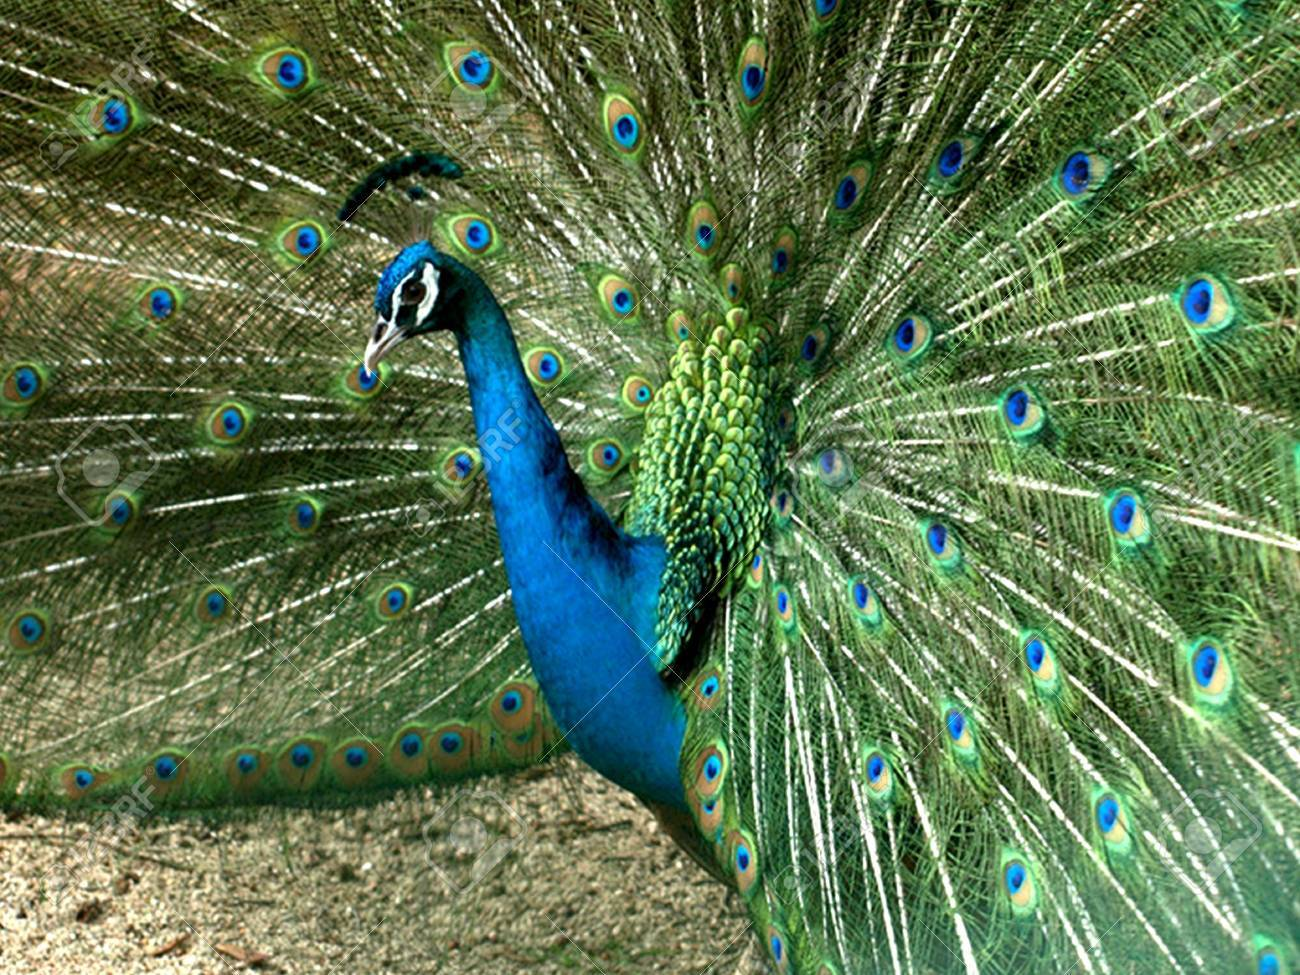 The King Peacock